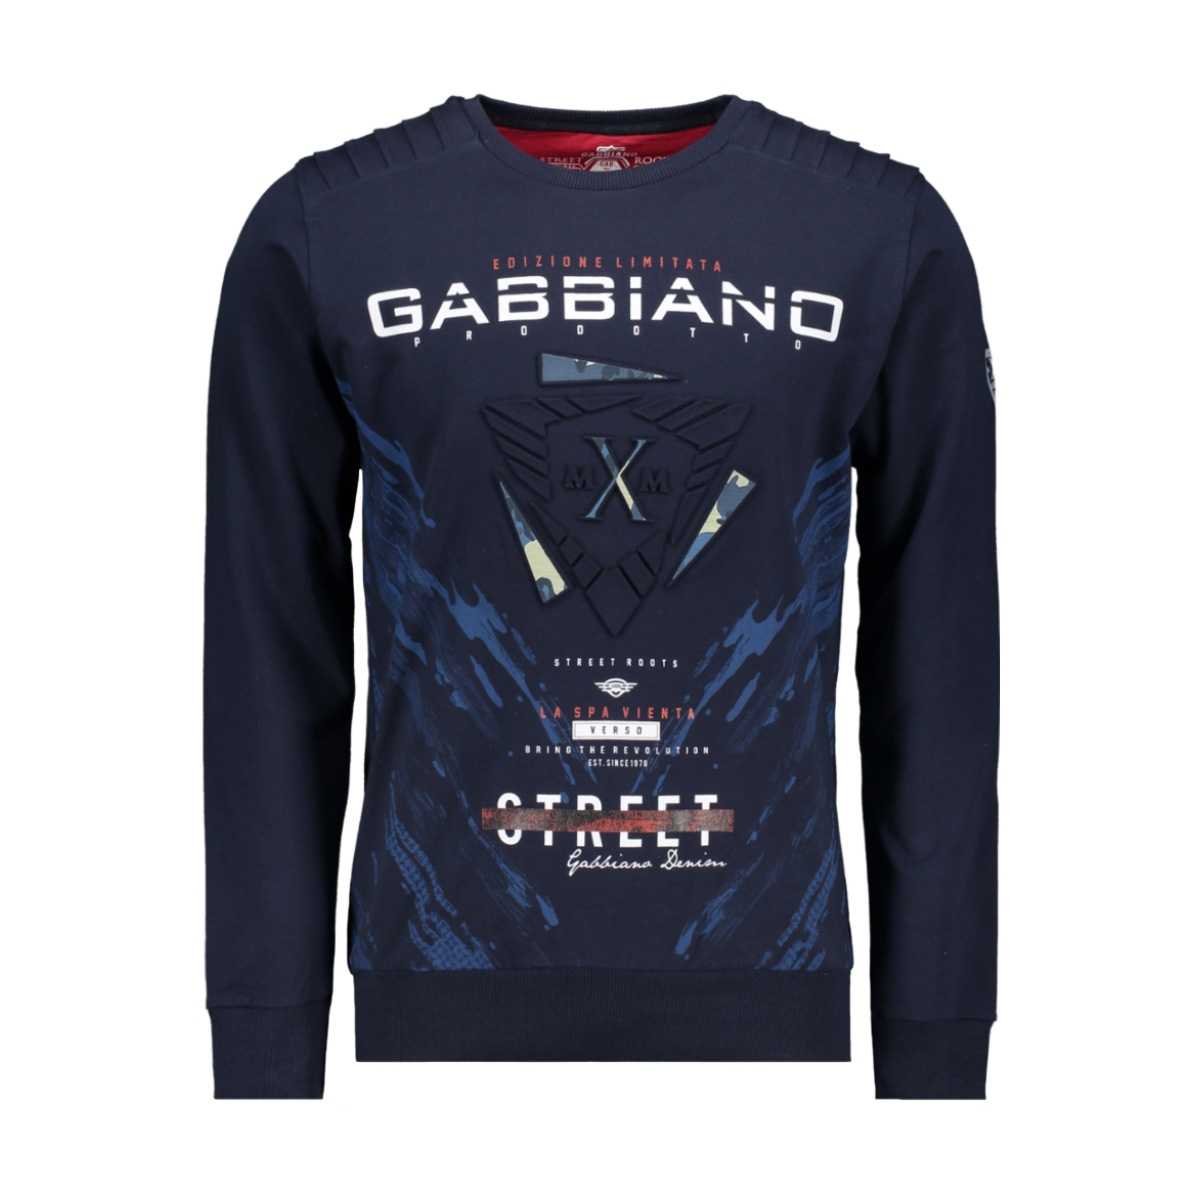 76105 gabbiano sweater navy